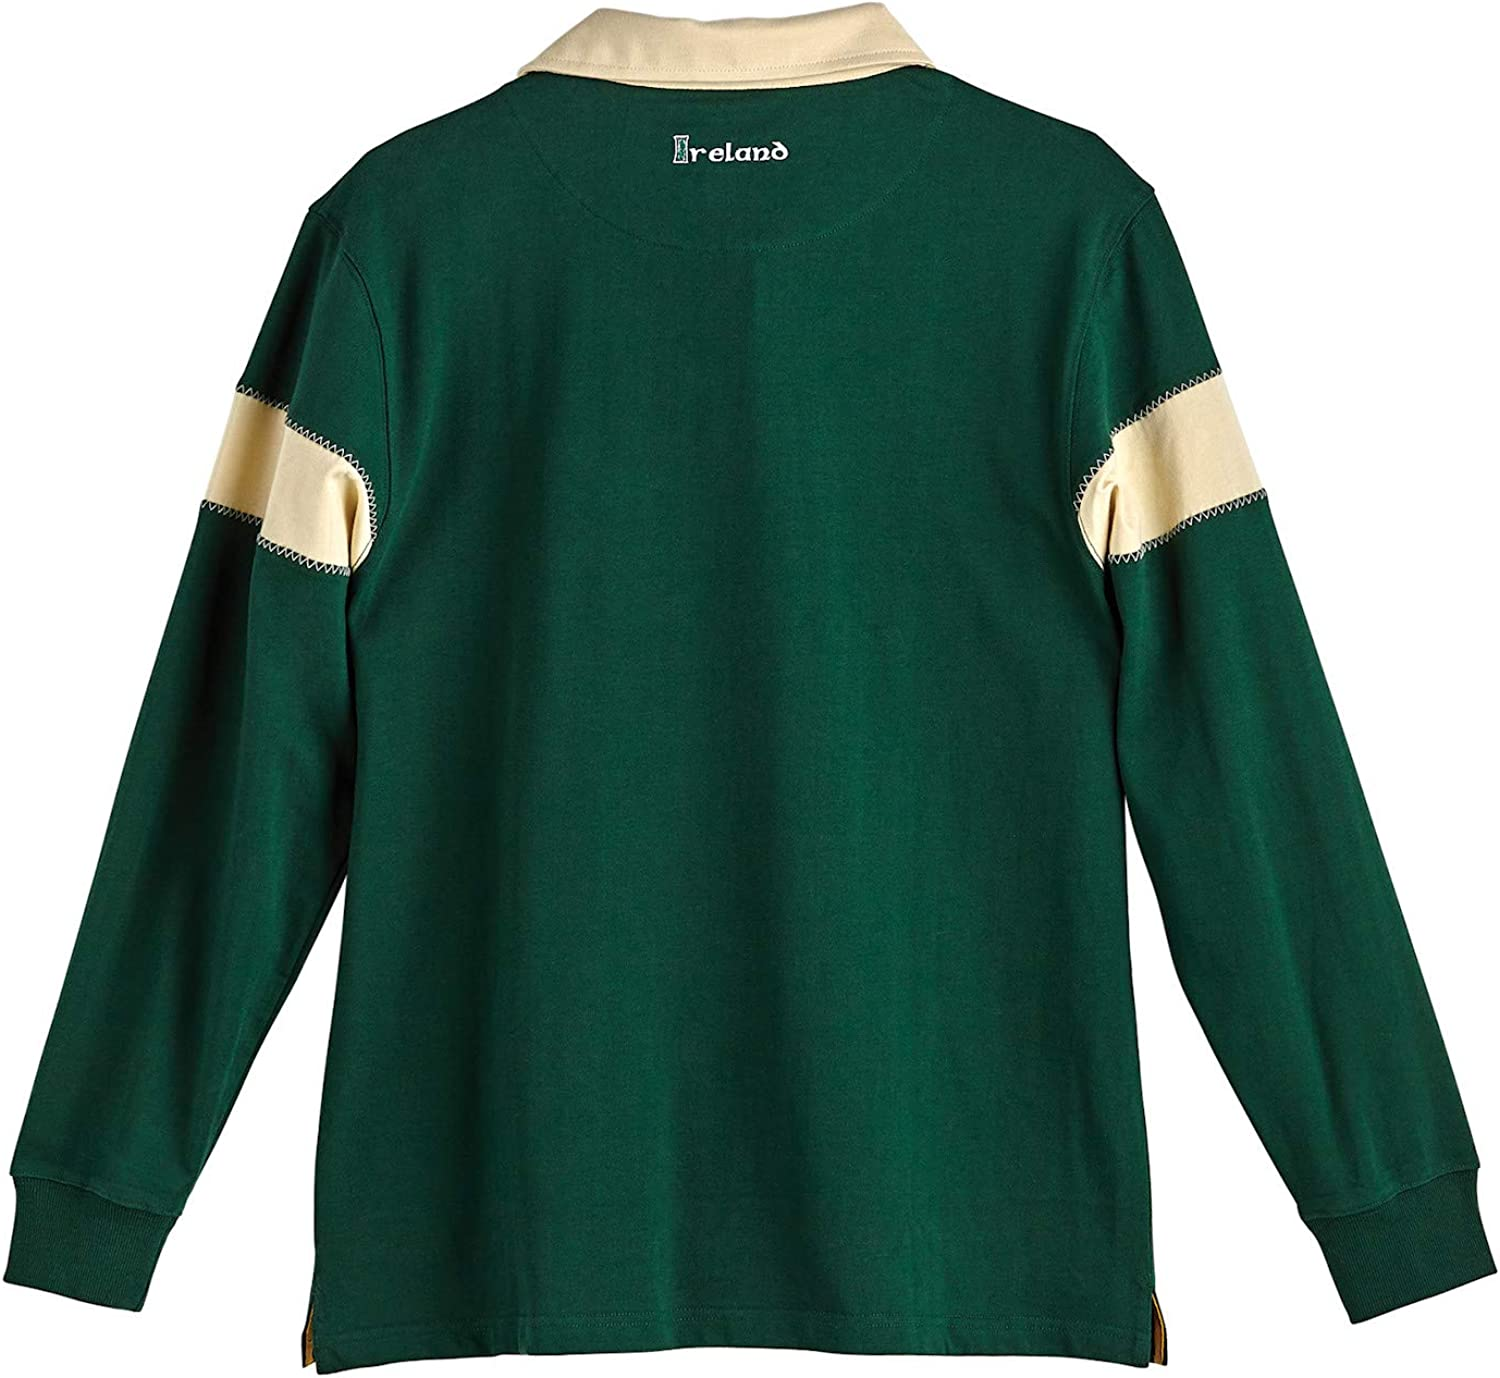 Green and Ivory Sport Top with Celtic Cross Mens Ireland Rugby Jersey Shirt